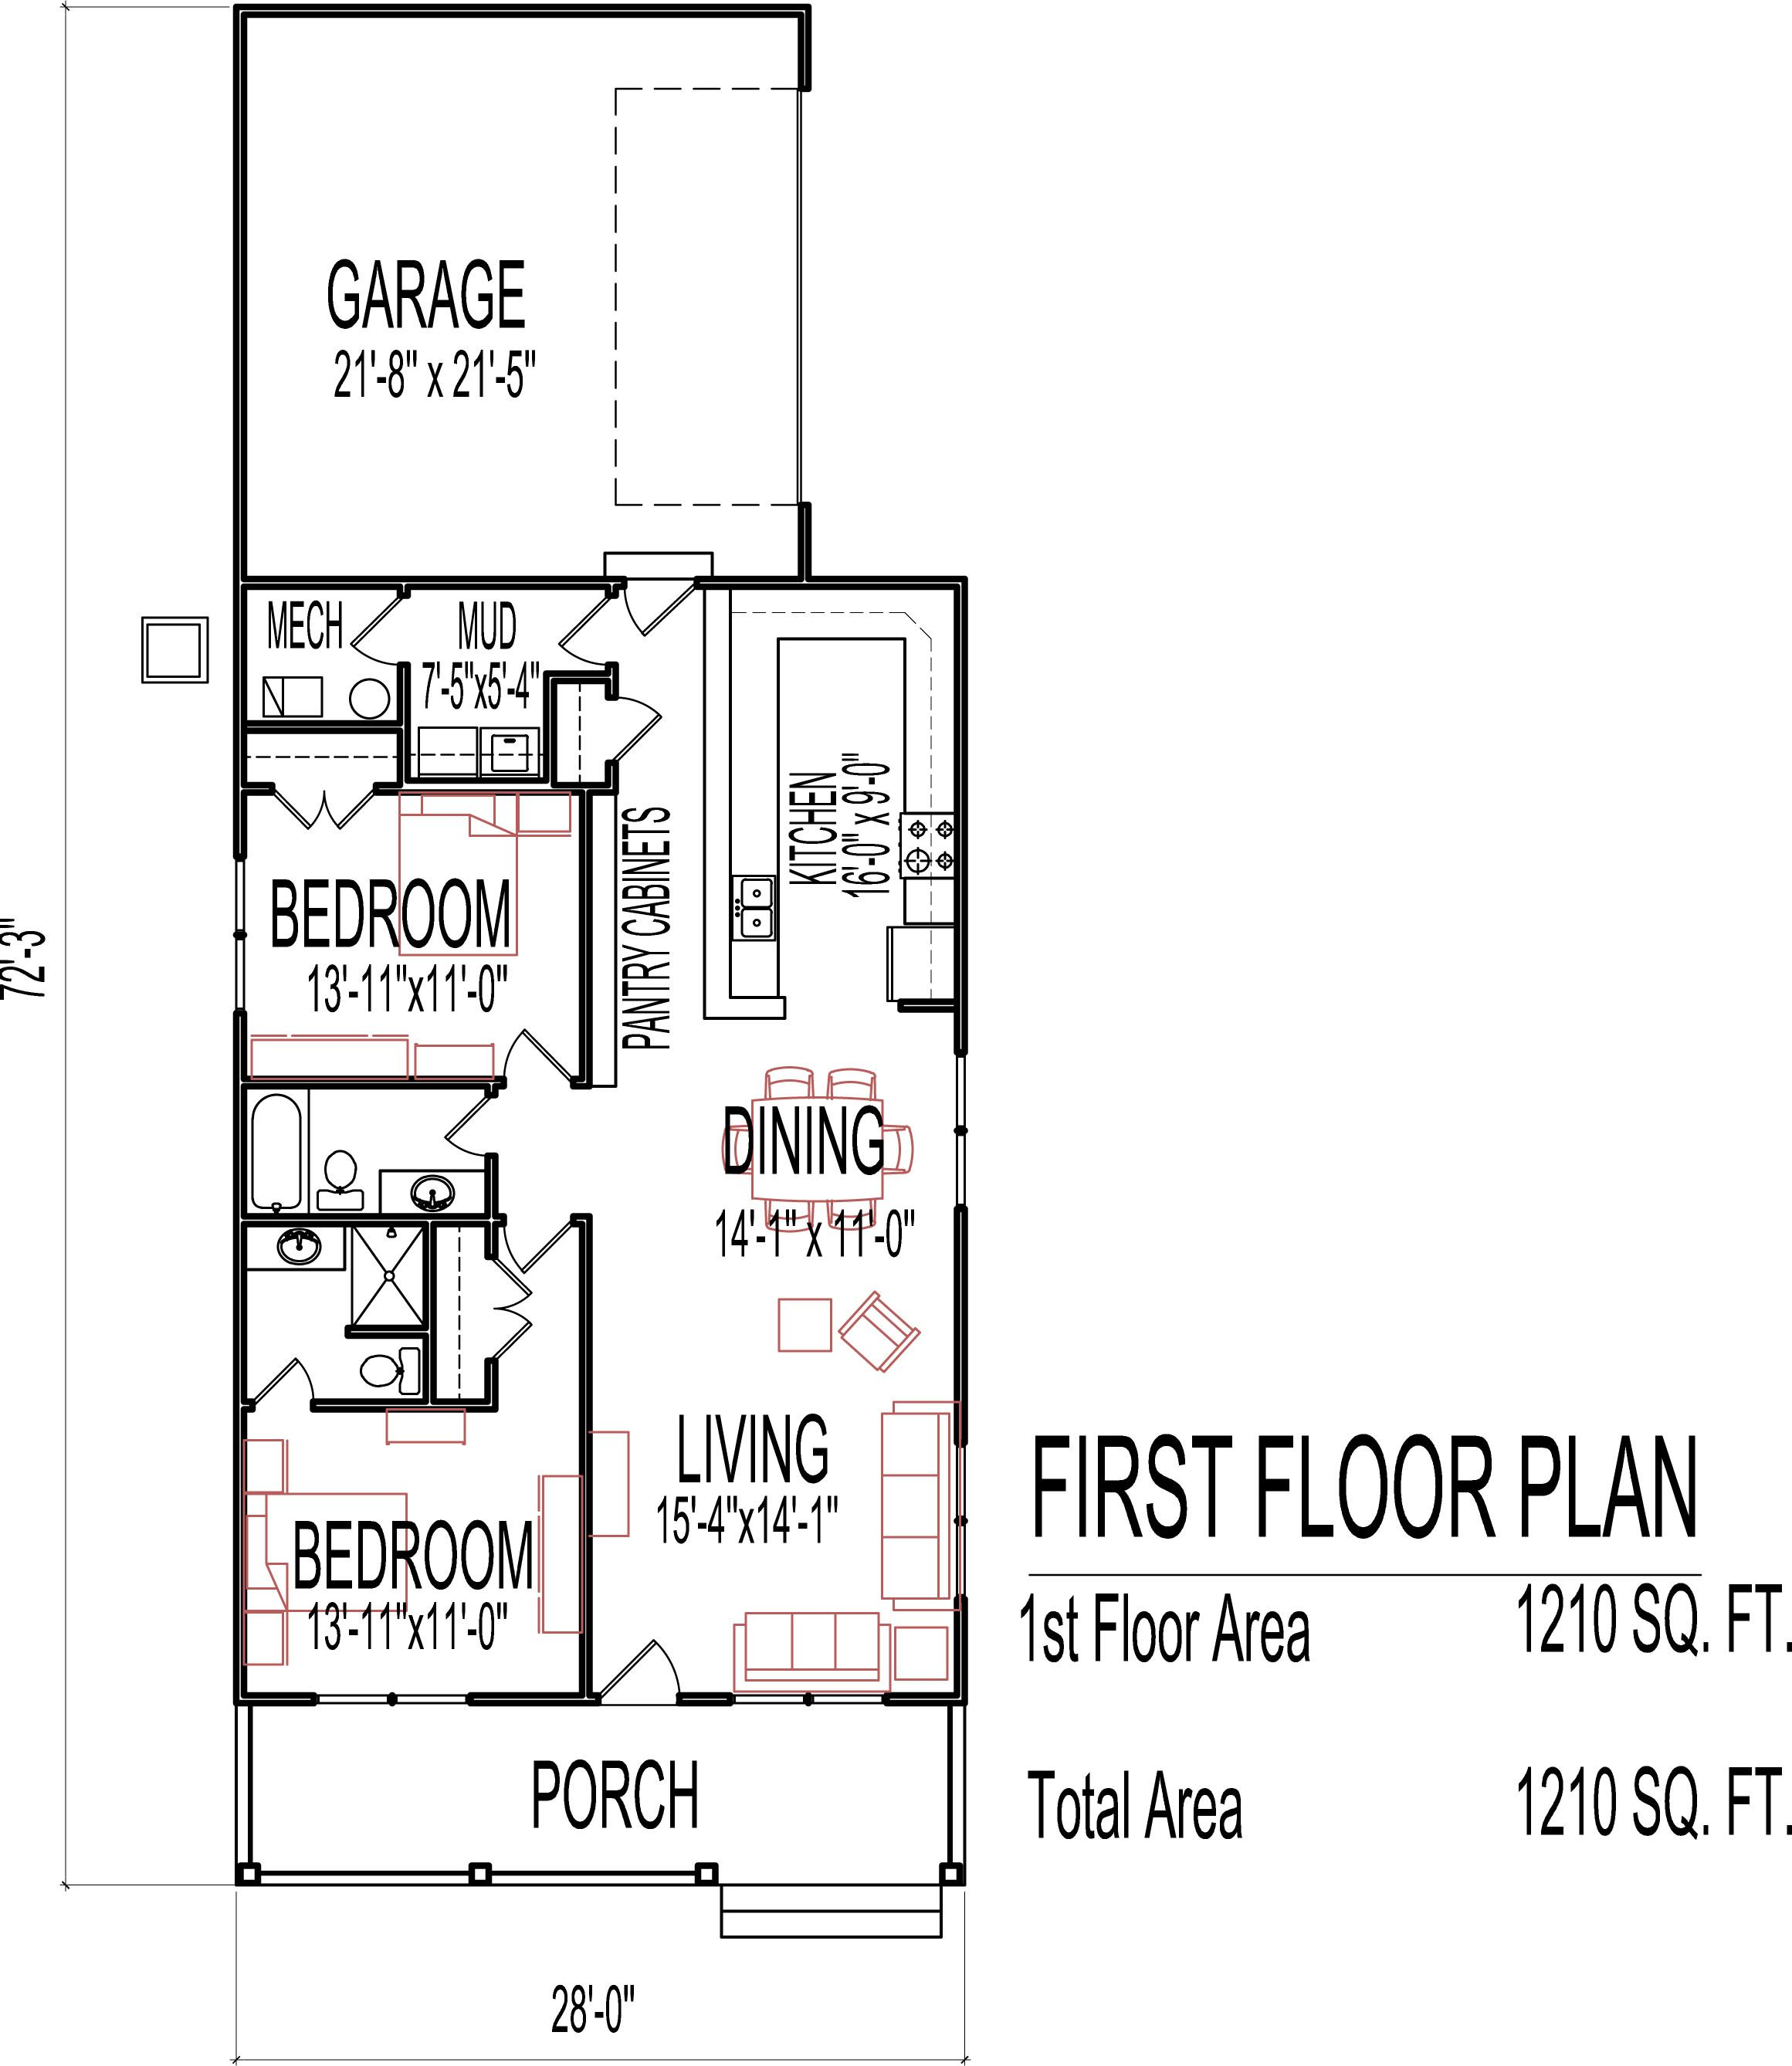 small low cost economical 2 bedroom 2 bath 1200 sq ft single story house floor plans - Single Story House Plans